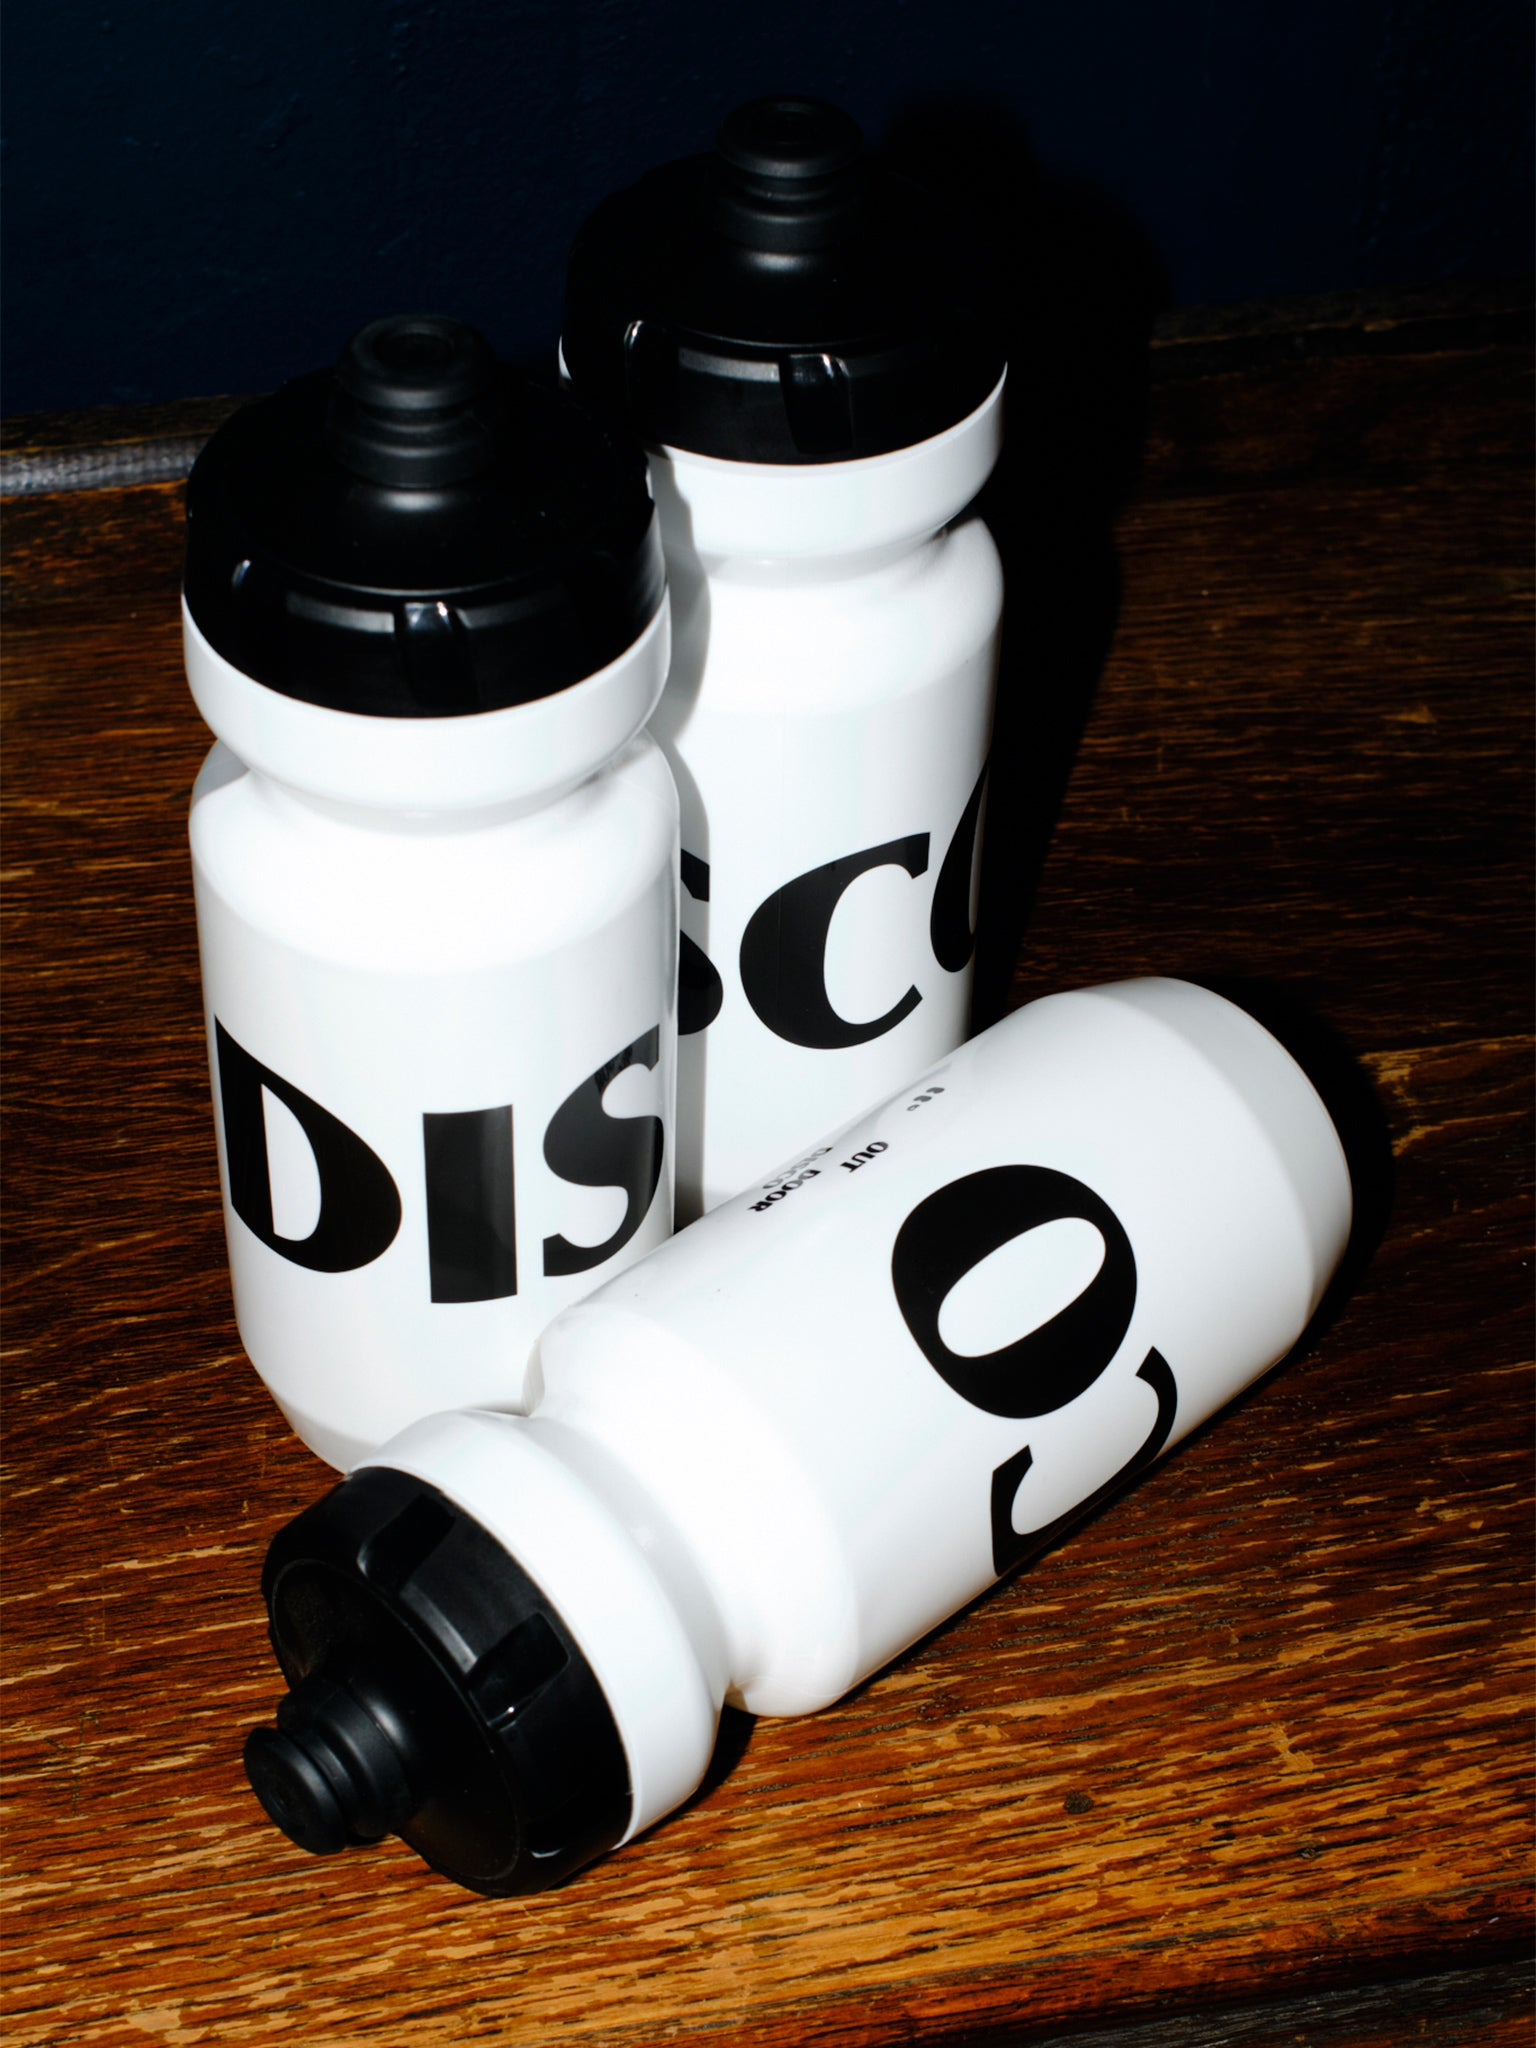 Three white bidons with a black DISCO logo.